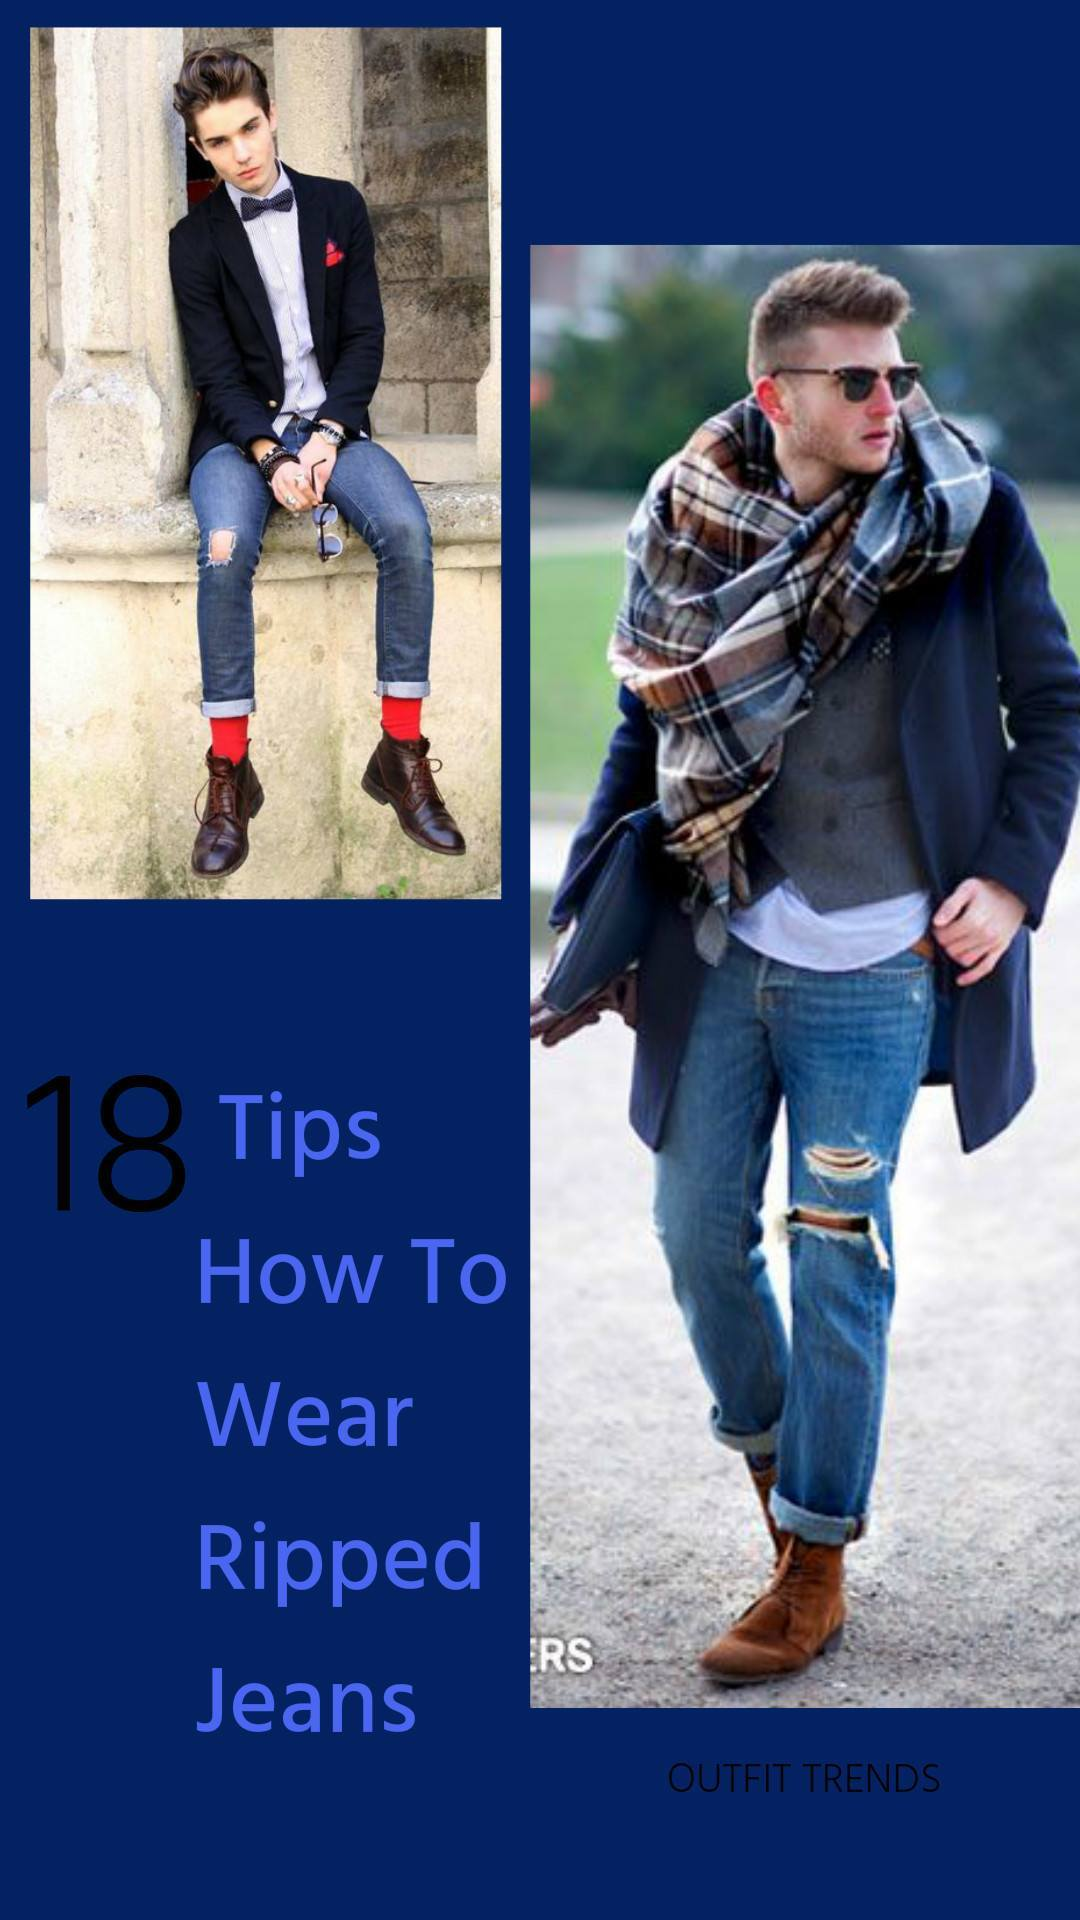 Men Ripped Jeans Outfits18 Tips How To Wear Ripped Jeans